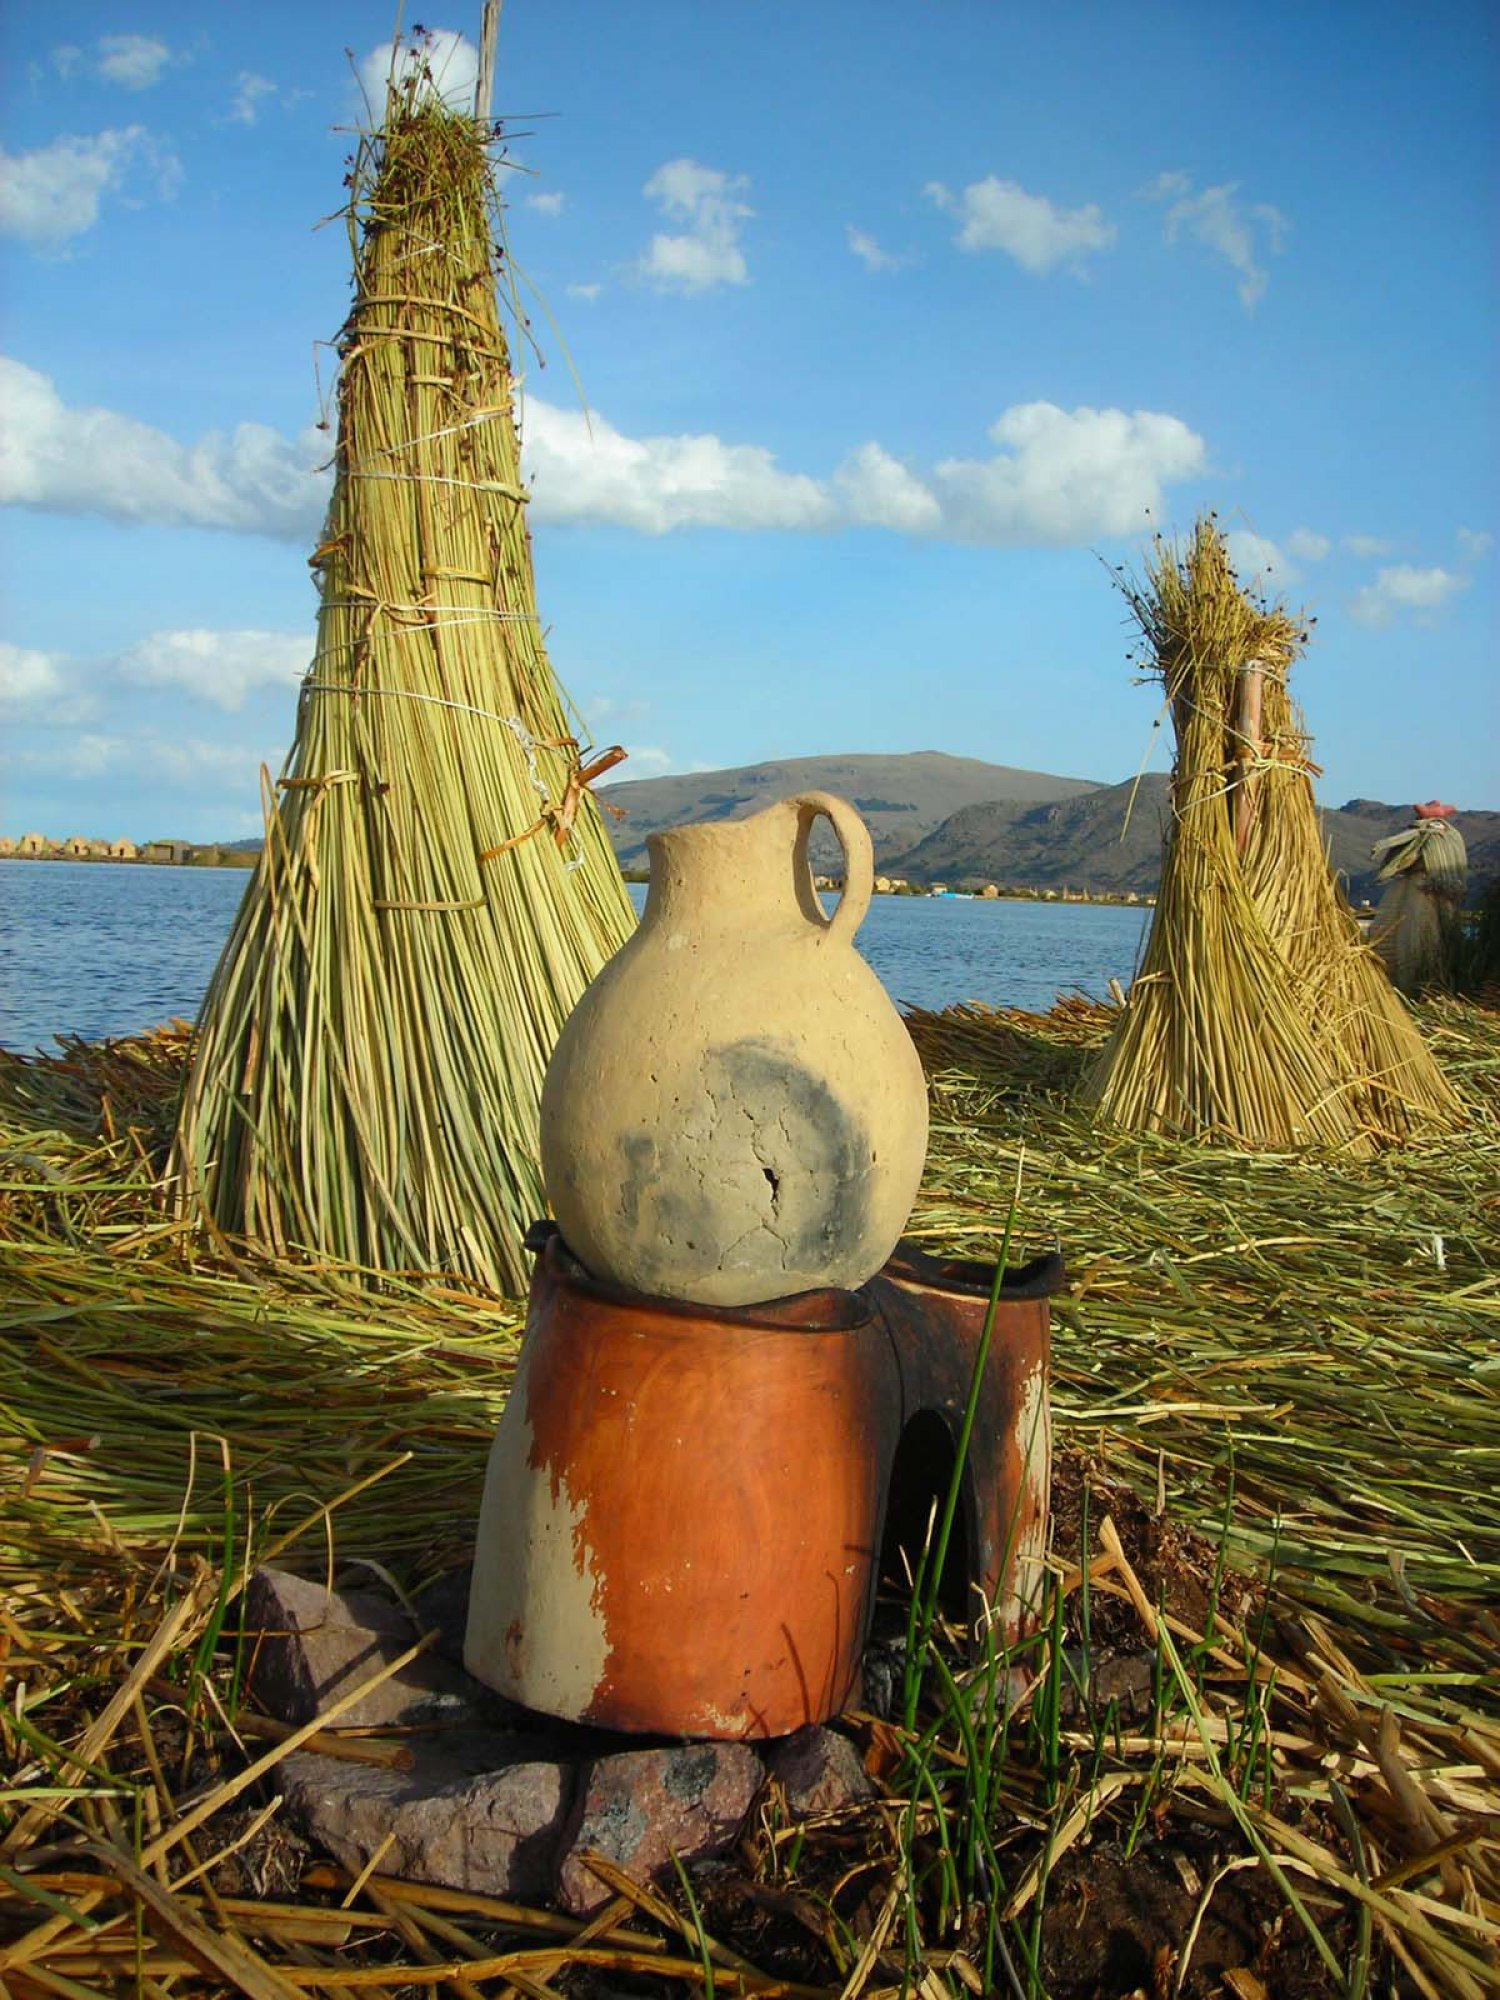 https://bubo.sk/uploads/galleries/7314/peru-titicaca.jpg